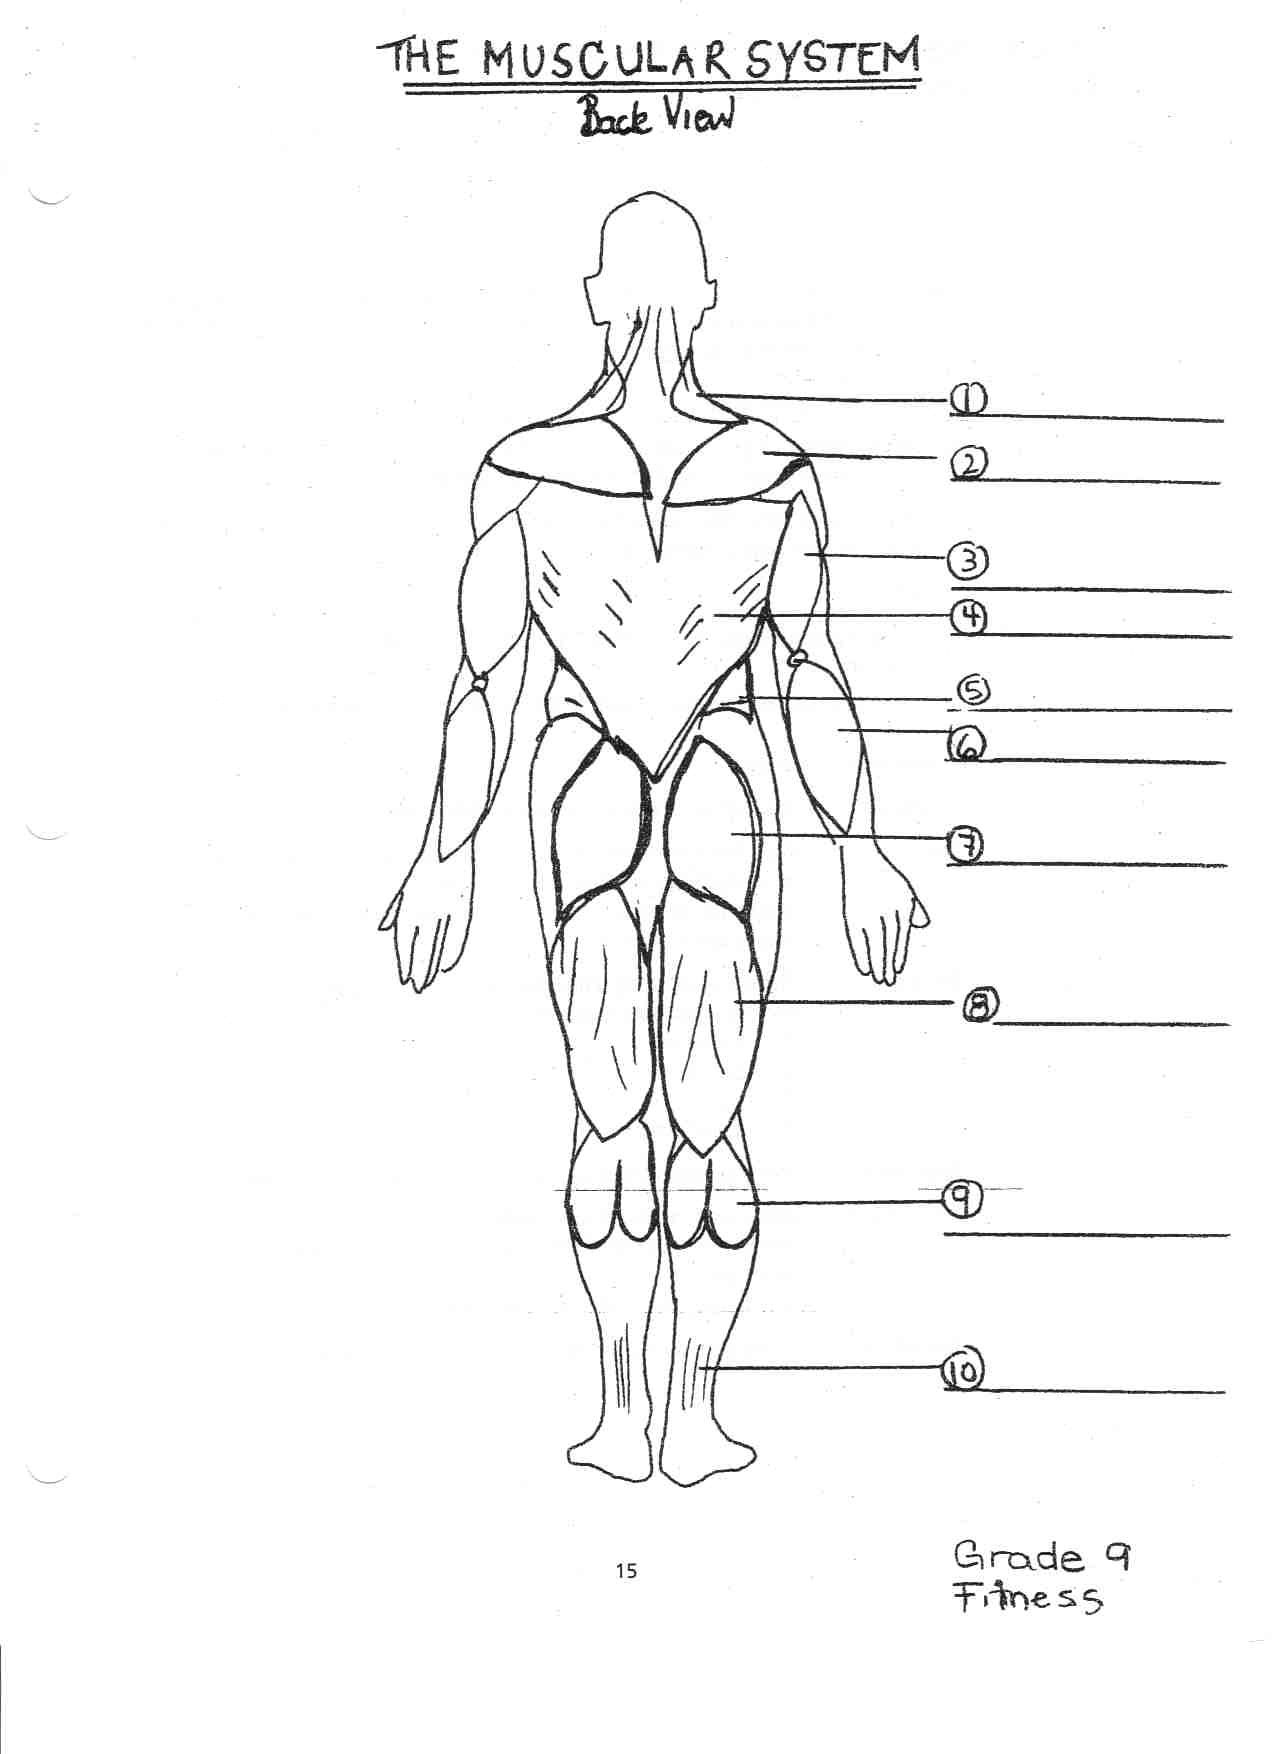 image result for blank muscular system diagram | brandon's pins